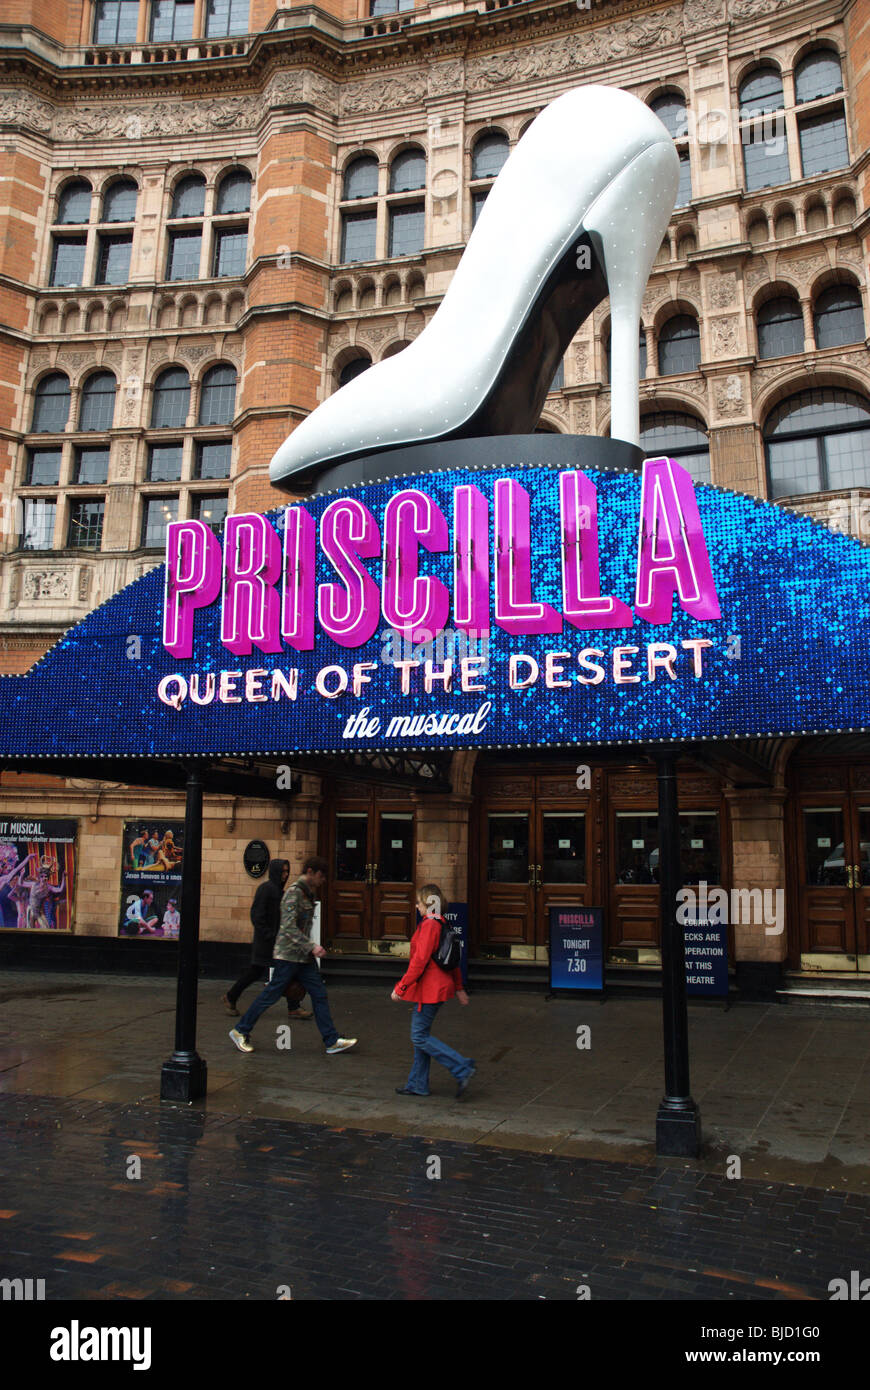 The Musical, Priscilla Queen of the Desert, Palace Theatre, Shaftsbury Avenue, London - Stock Image